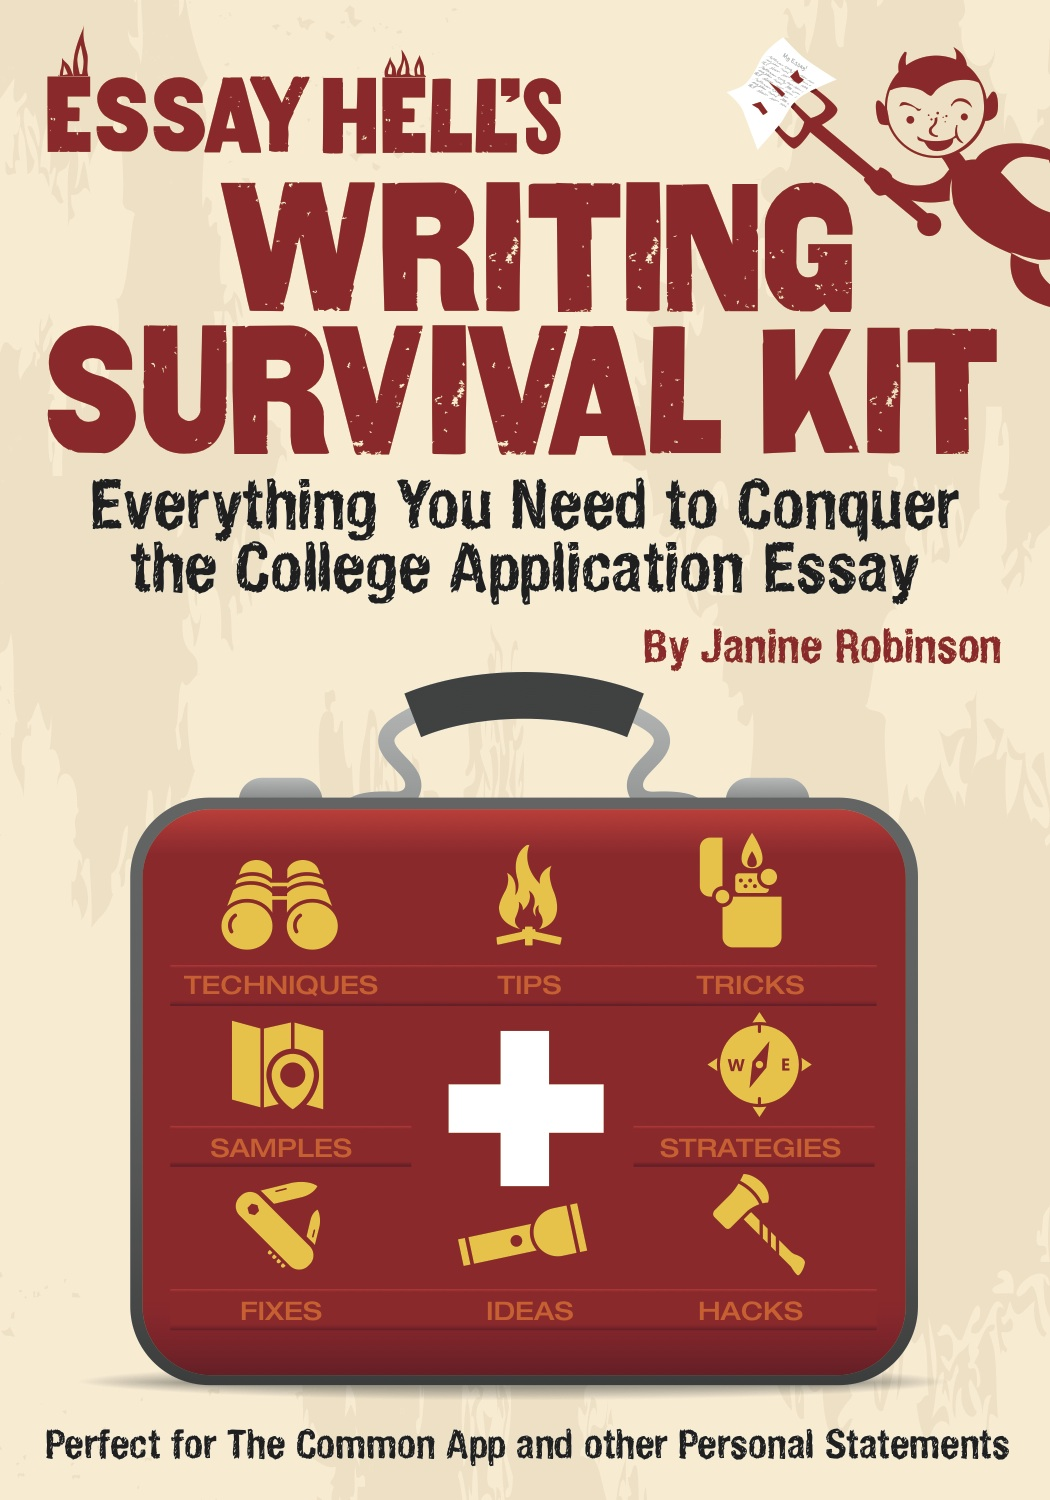 Writing college admission essay kit